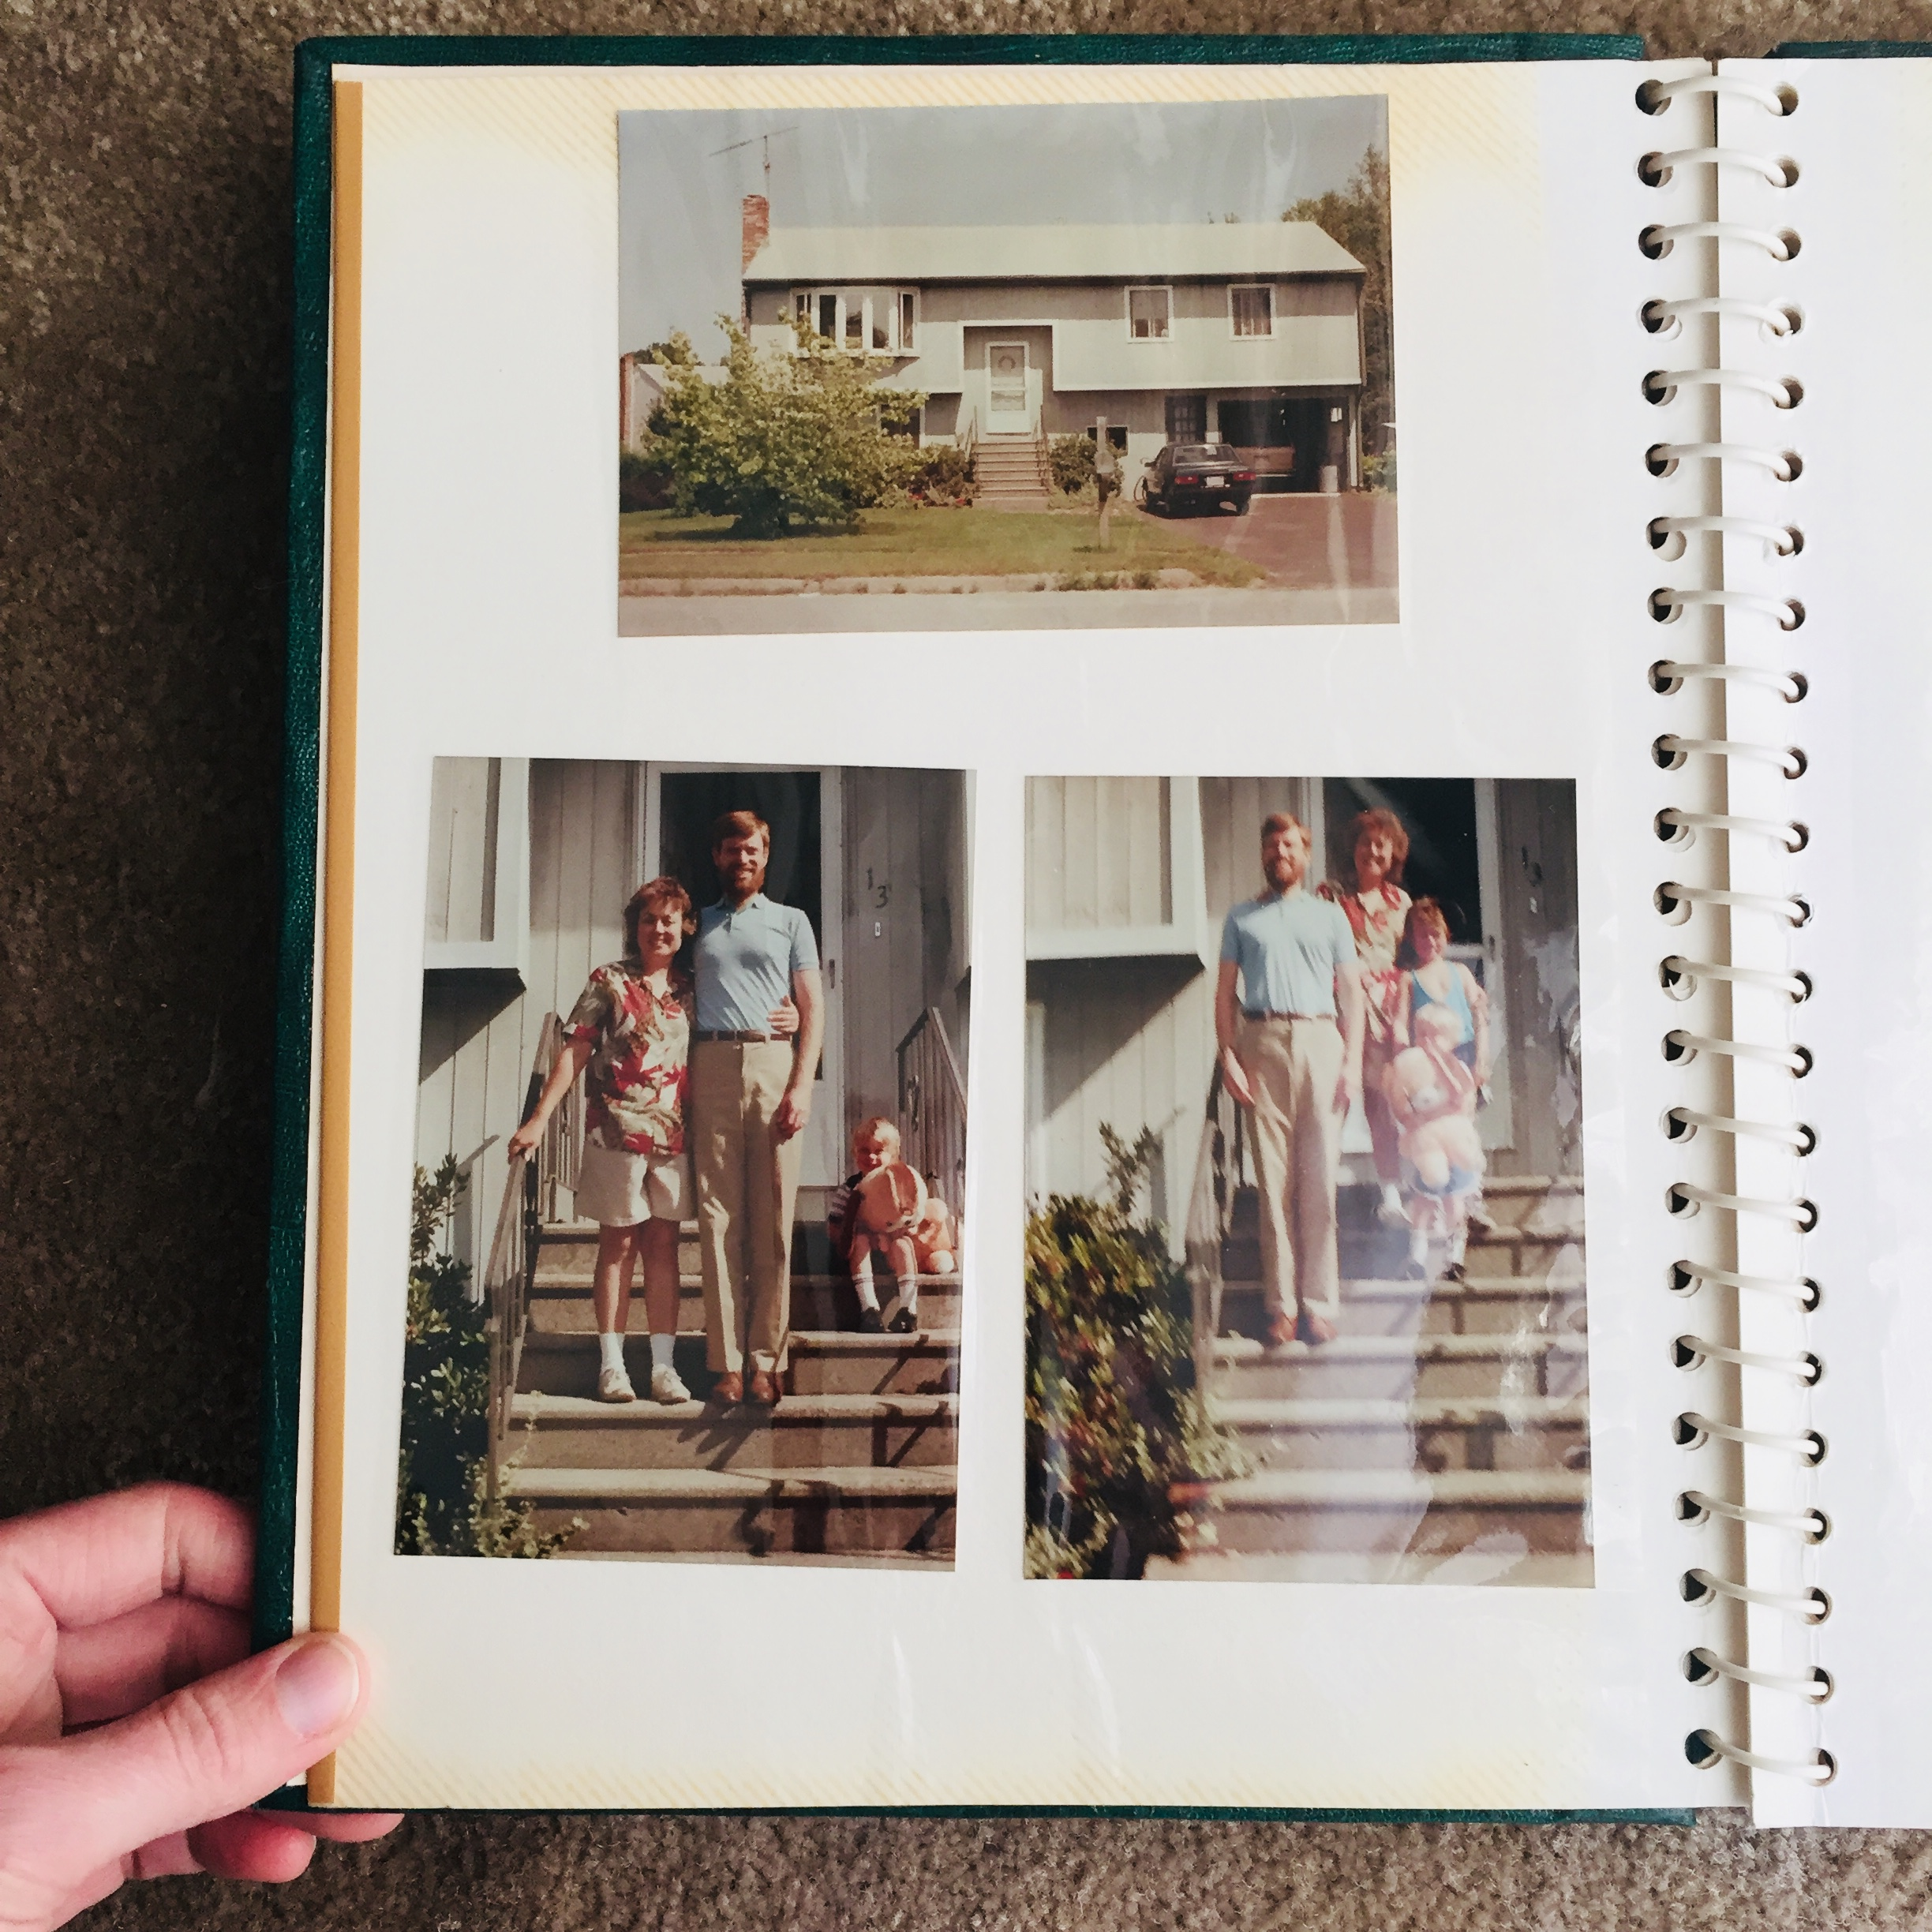 You've got to start somewhere -- in my case, I started with blurry photographs and a manual camera in the 80s. I photographed my family, mostly, and I haven't stopped!